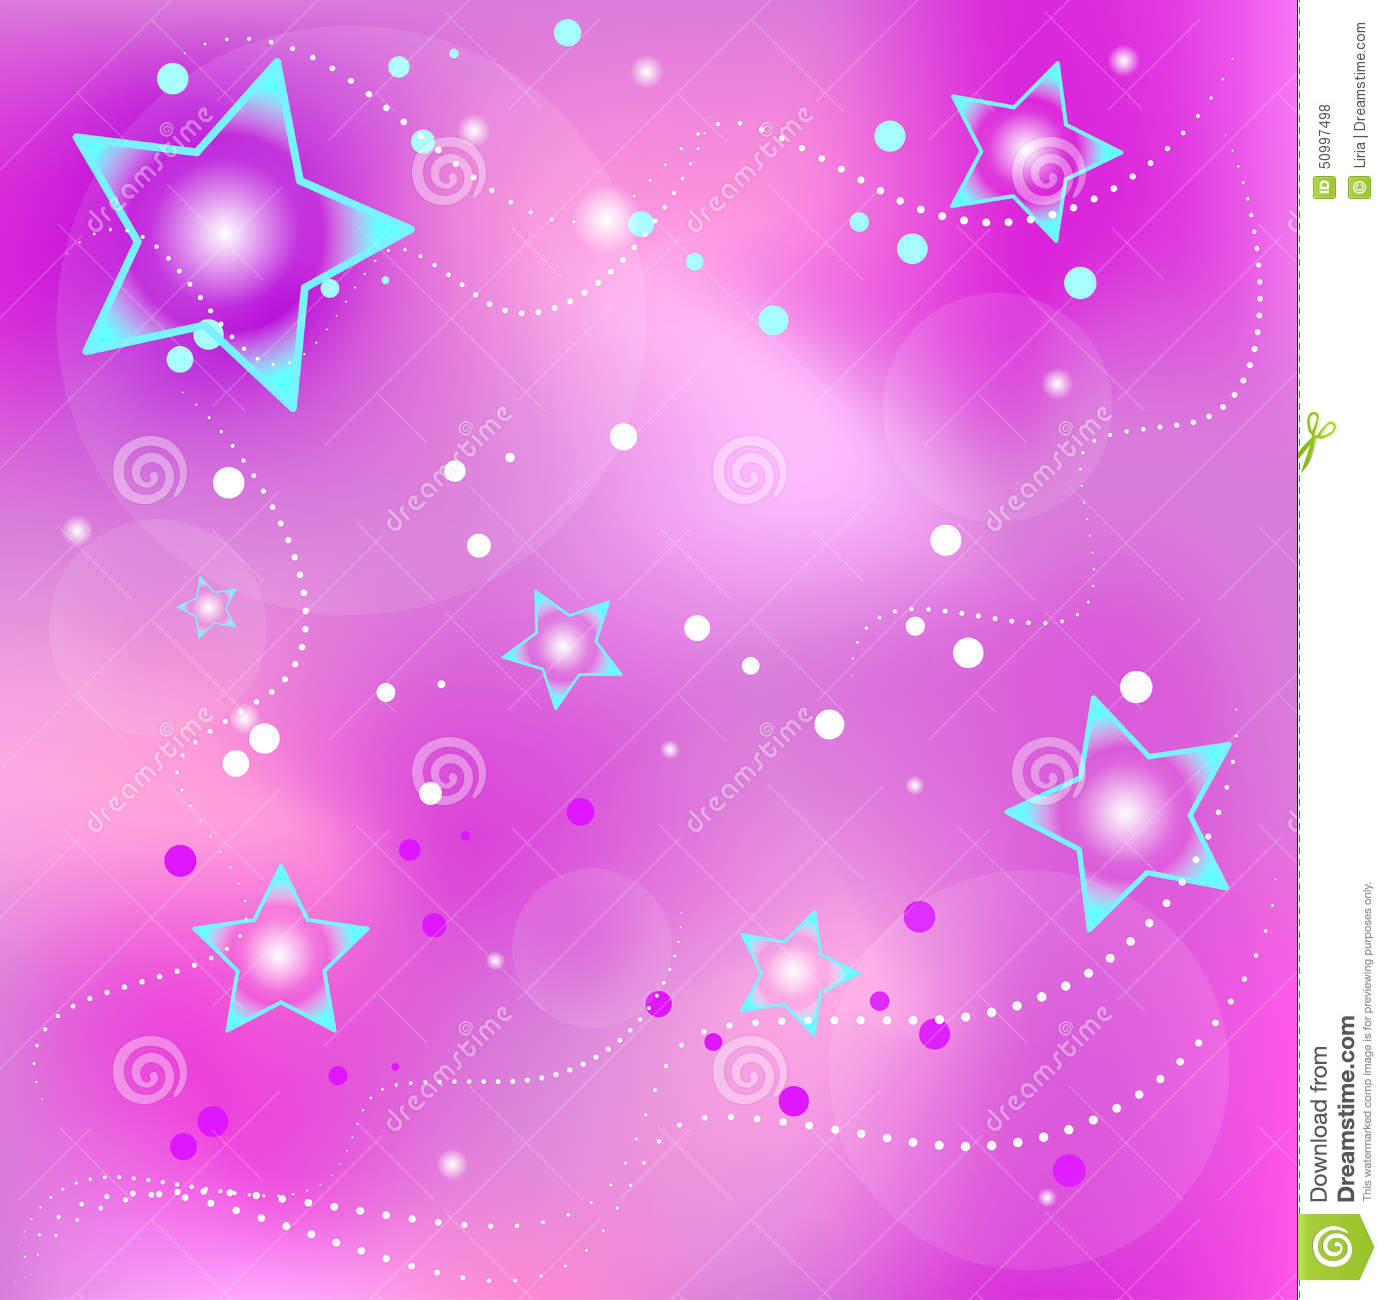 Violet Background With Stars Stock Vector - Image: 50997498